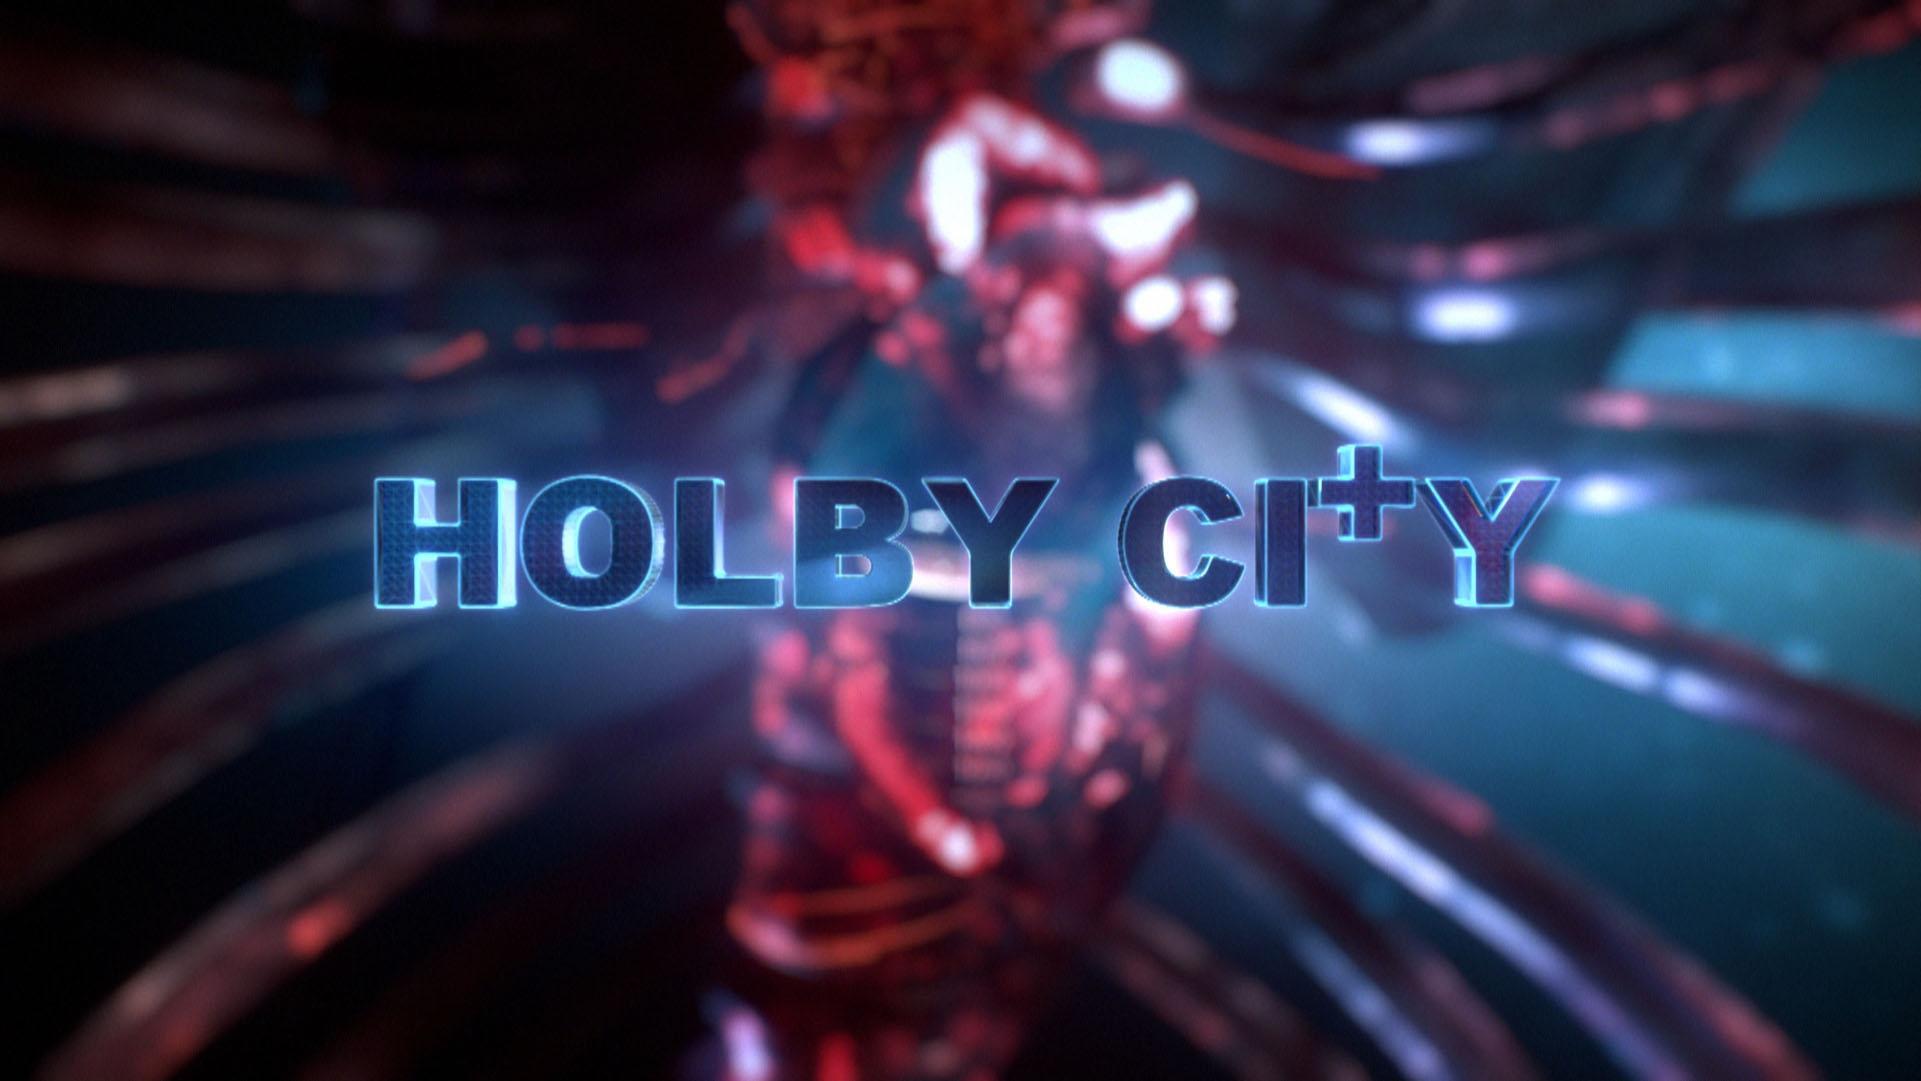 Holby City has been CANCELLED after 23 years on BBC